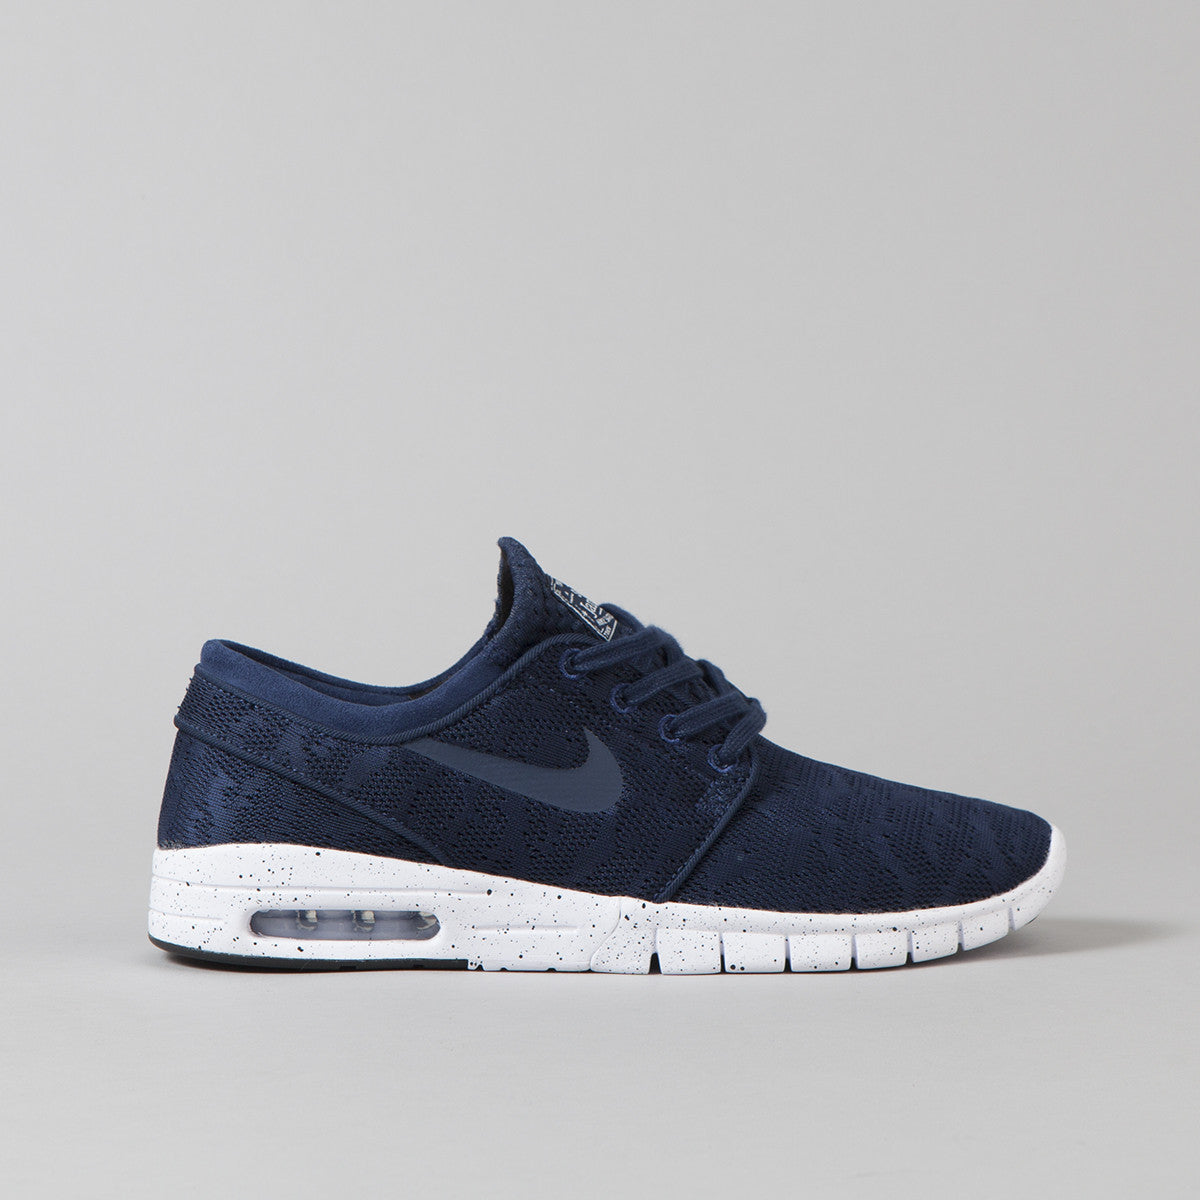 nike sb stefan janoski max shoes midnight navy mid navy white flatspot. Black Bedroom Furniture Sets. Home Design Ideas